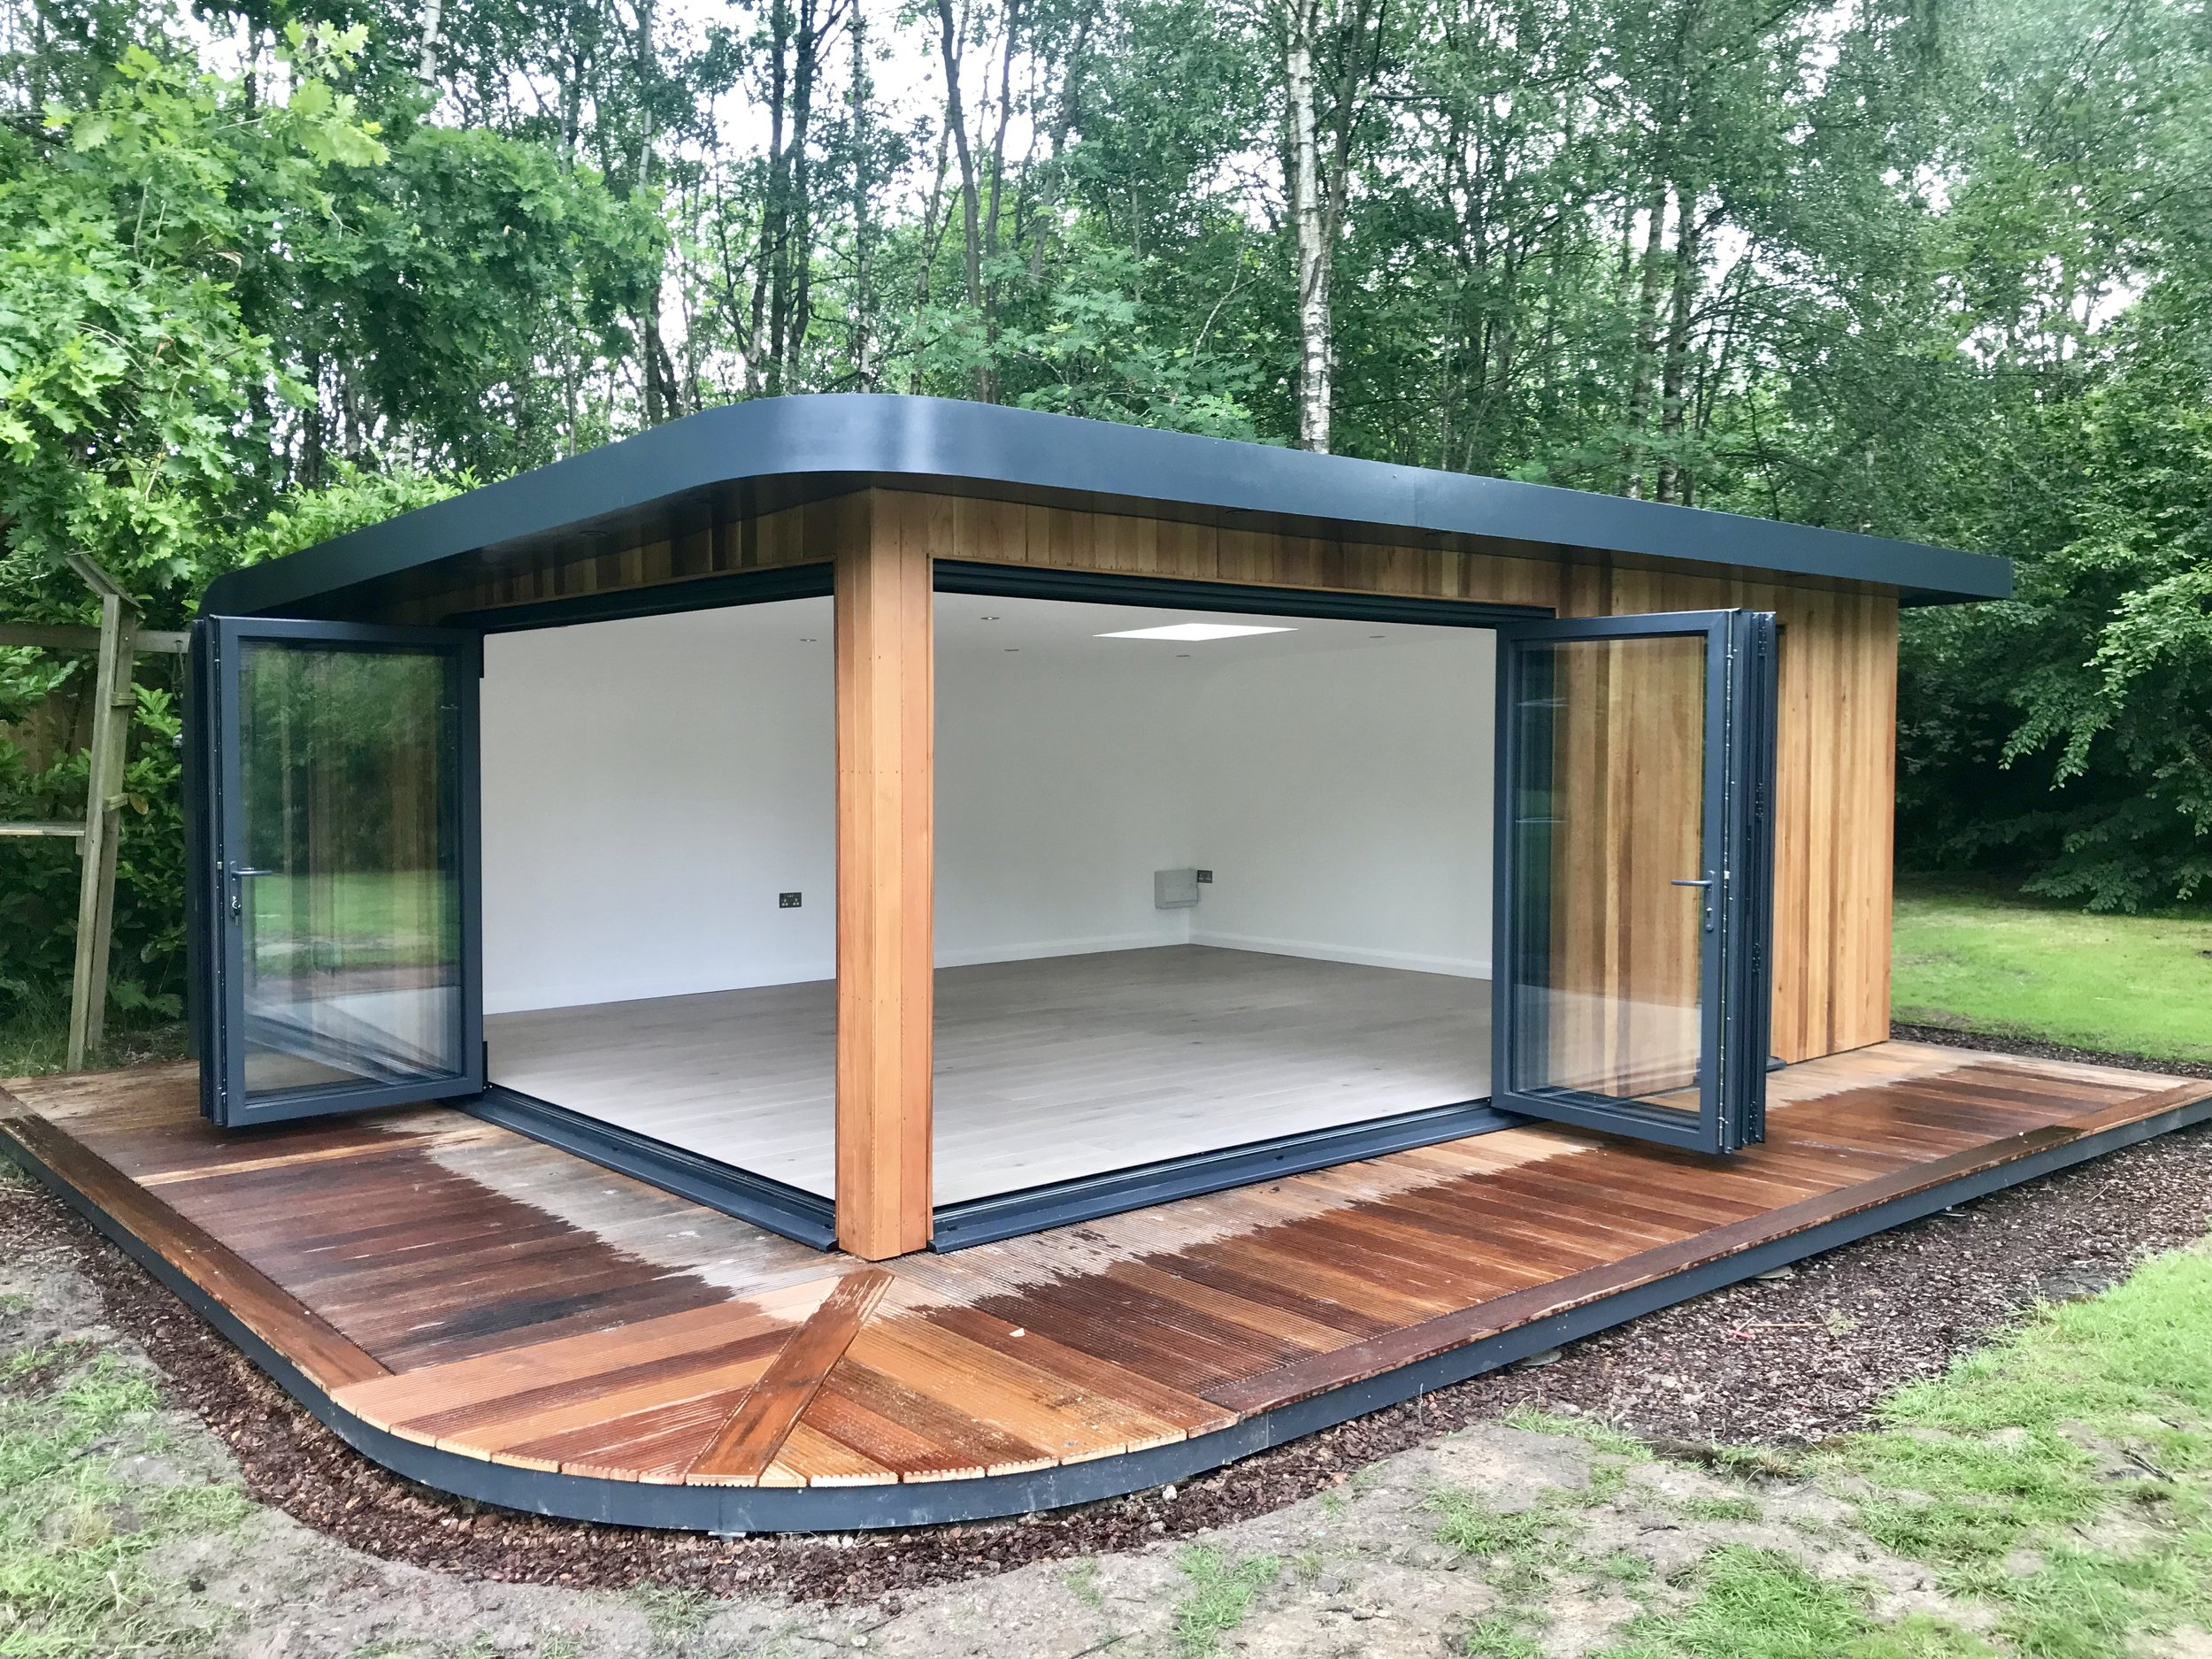 Curve garden rooms ltd